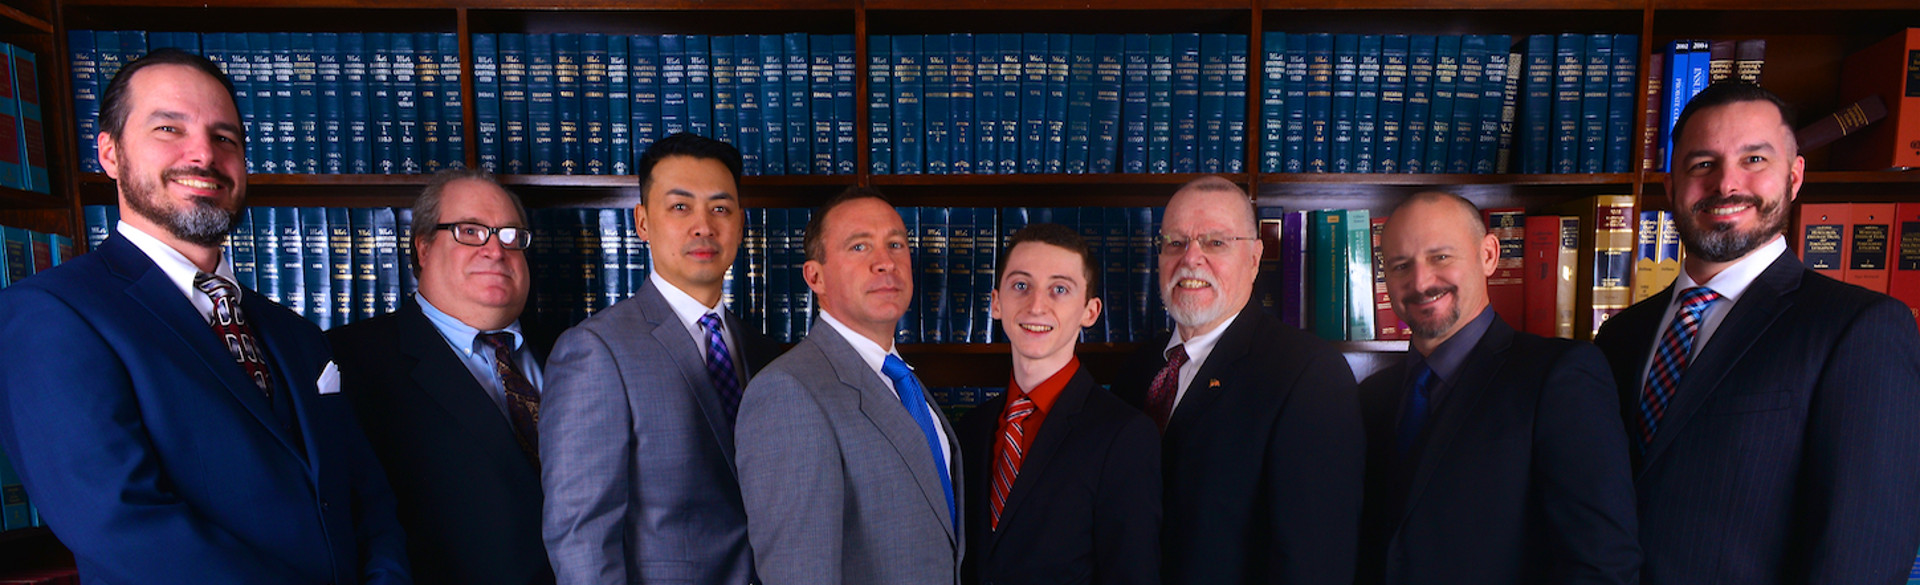 Fairfield, CA Car Accident Attorneys in Solano County